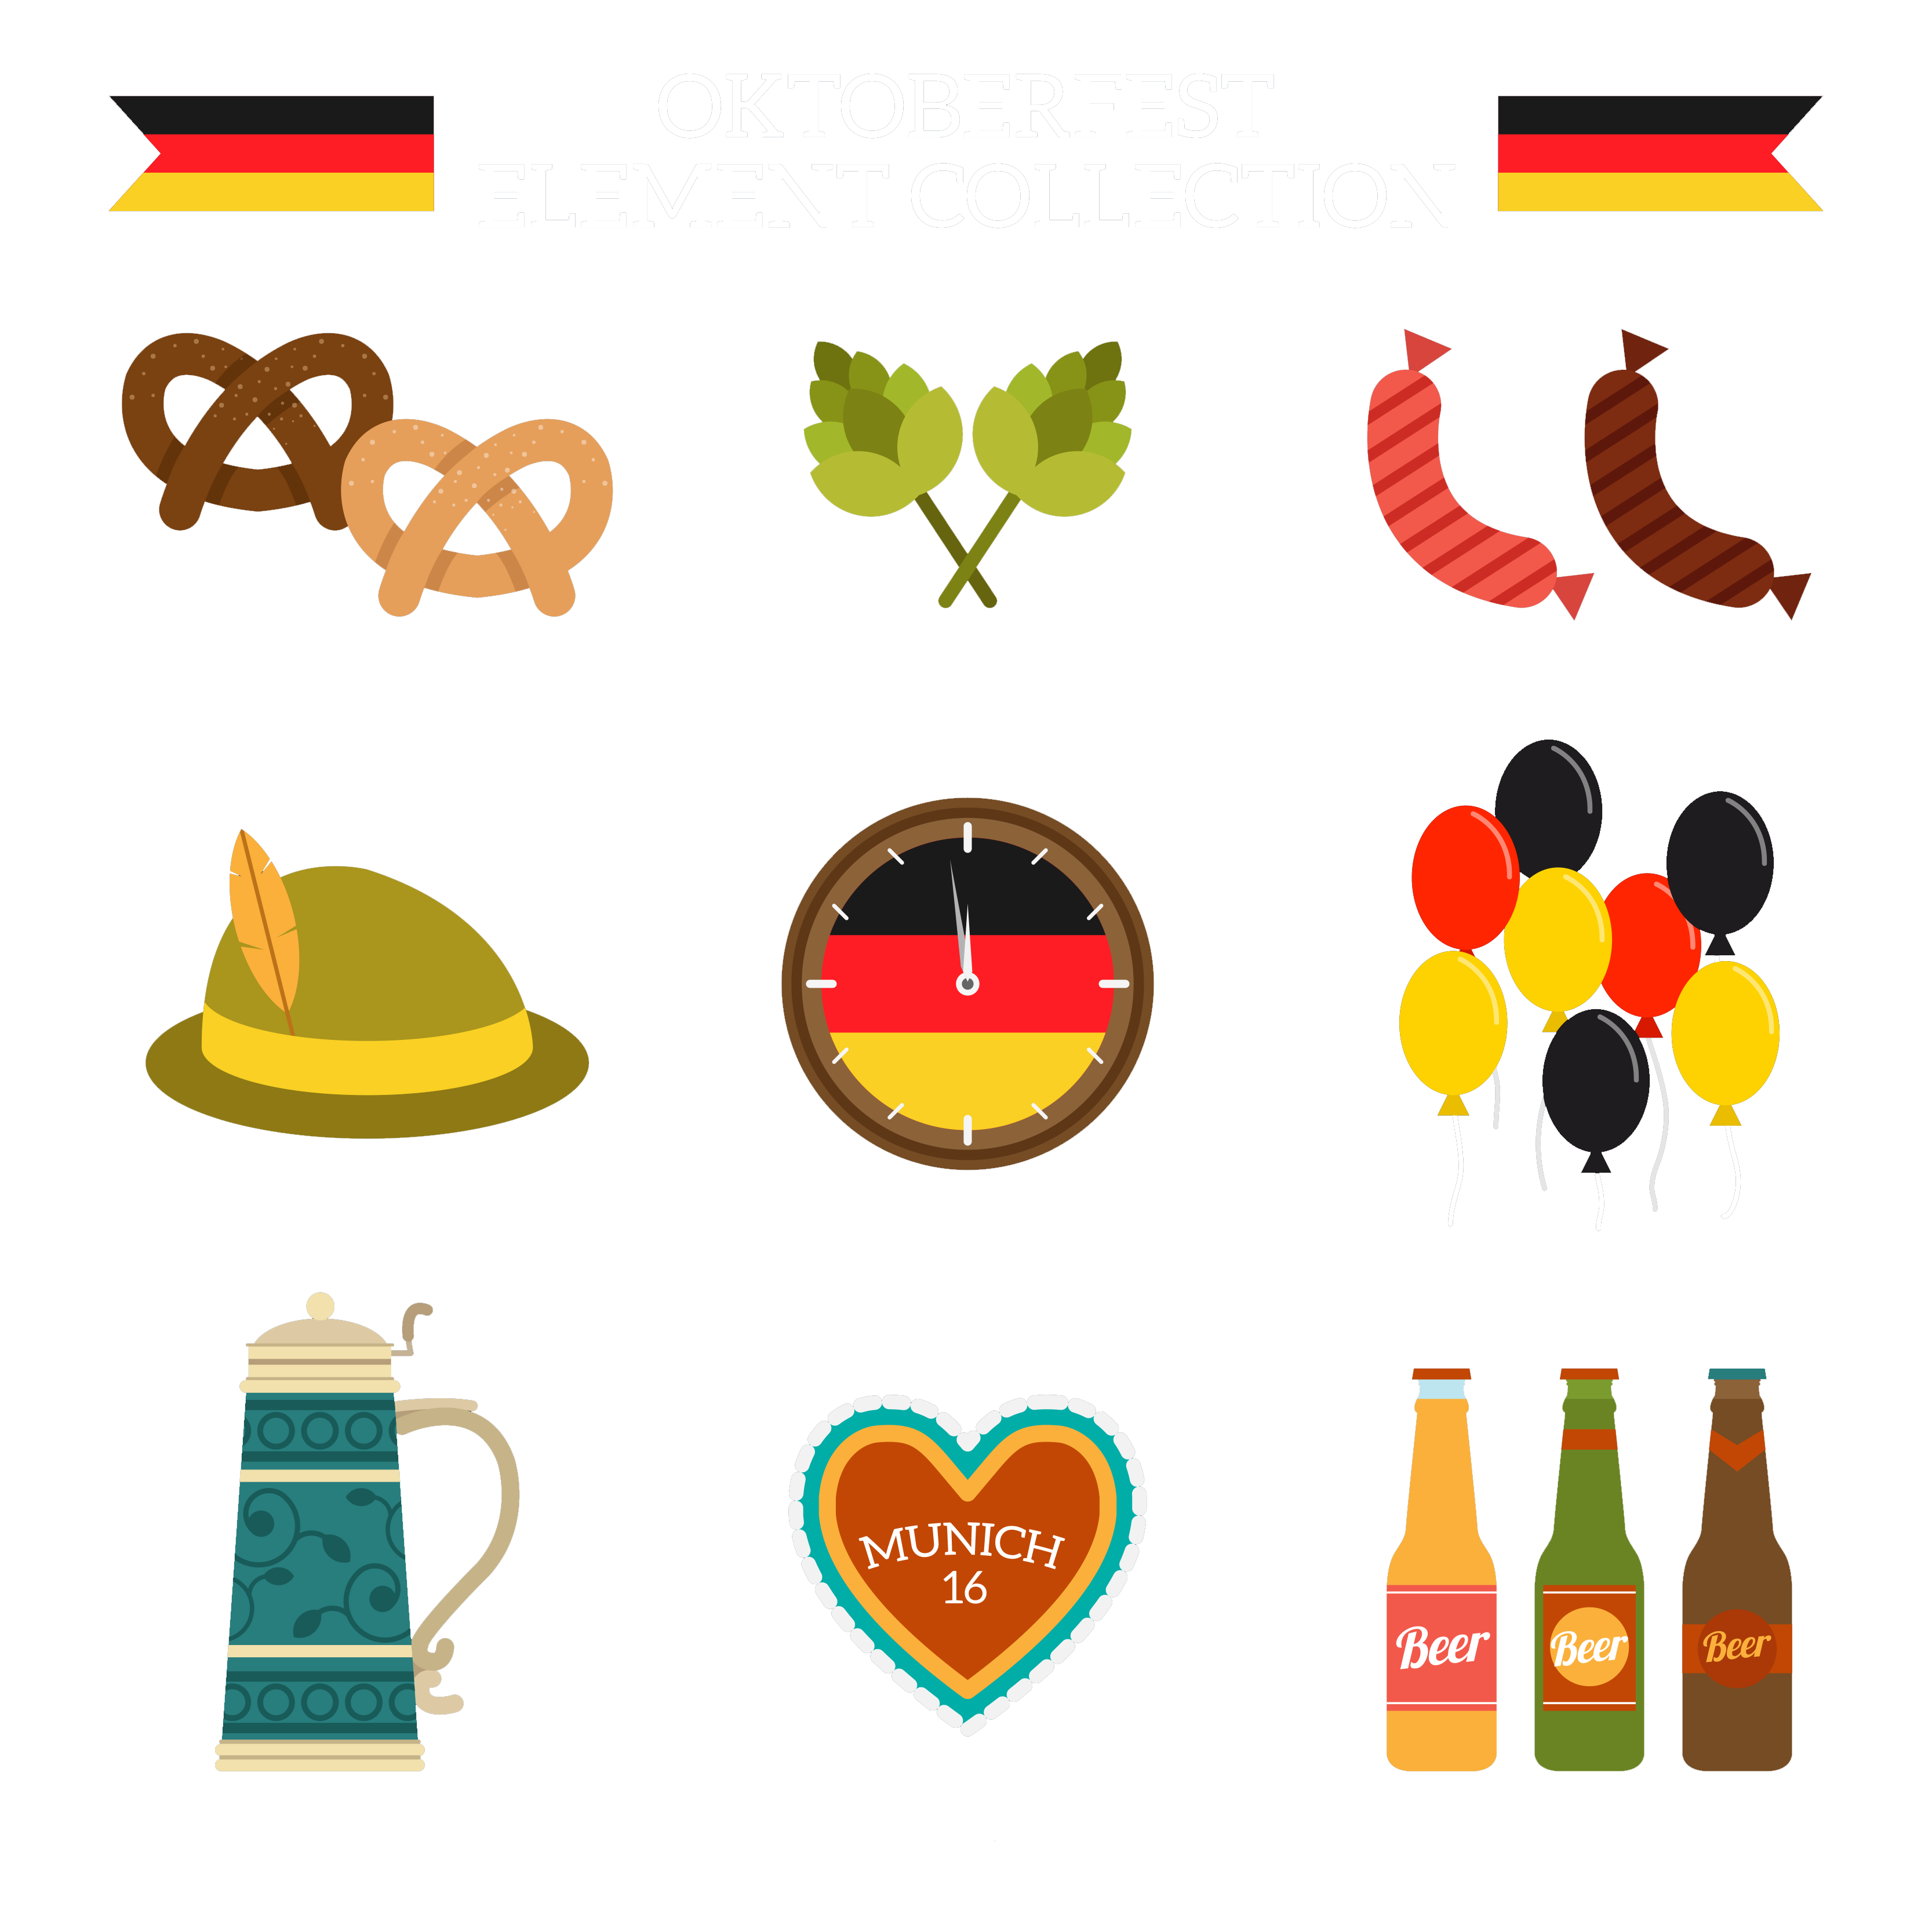 Free clipart apple beer image library stock Oktoberfest Beer Clip art - Oktoberfest element 3333*3333 transprent ... image library stock